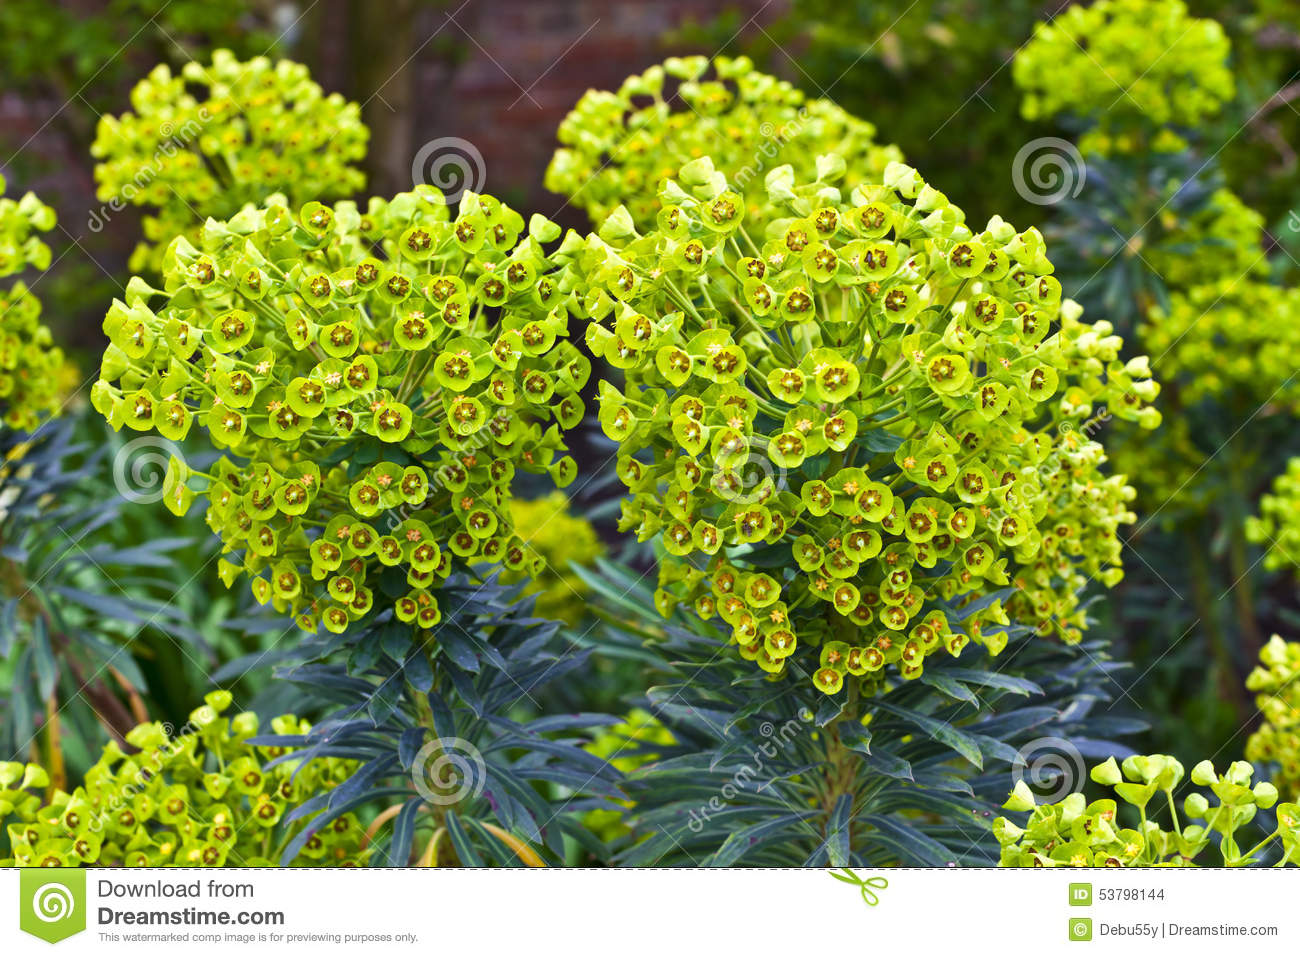 Plante vivace dans un jardin photo stock image 53798144 for Plante jardin